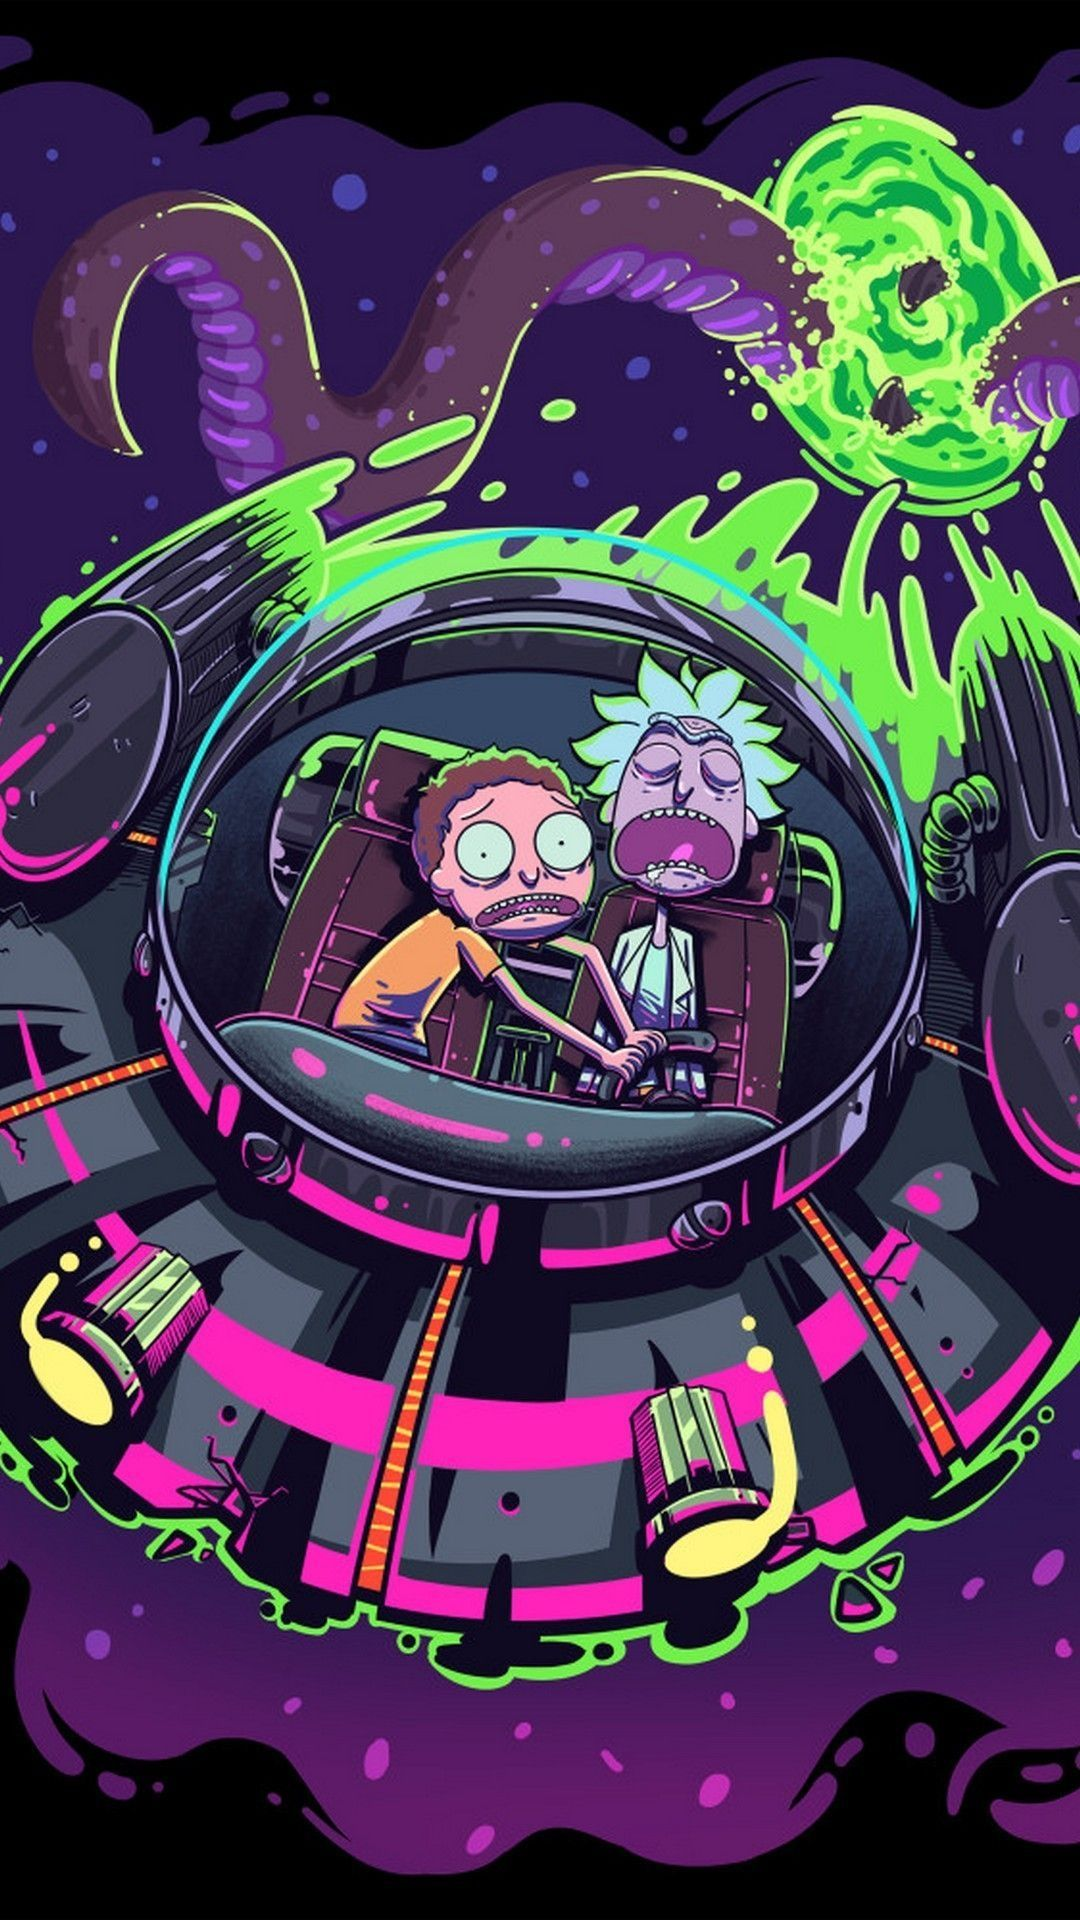 Rick And Morty Iphone Wallpapers Top Free Rick And Morty For Awesome Rick And Morty Wallpapers For Iphone In 2020 Cartoon Wallpaper Trippy Wallpaper Anime Wallpaper